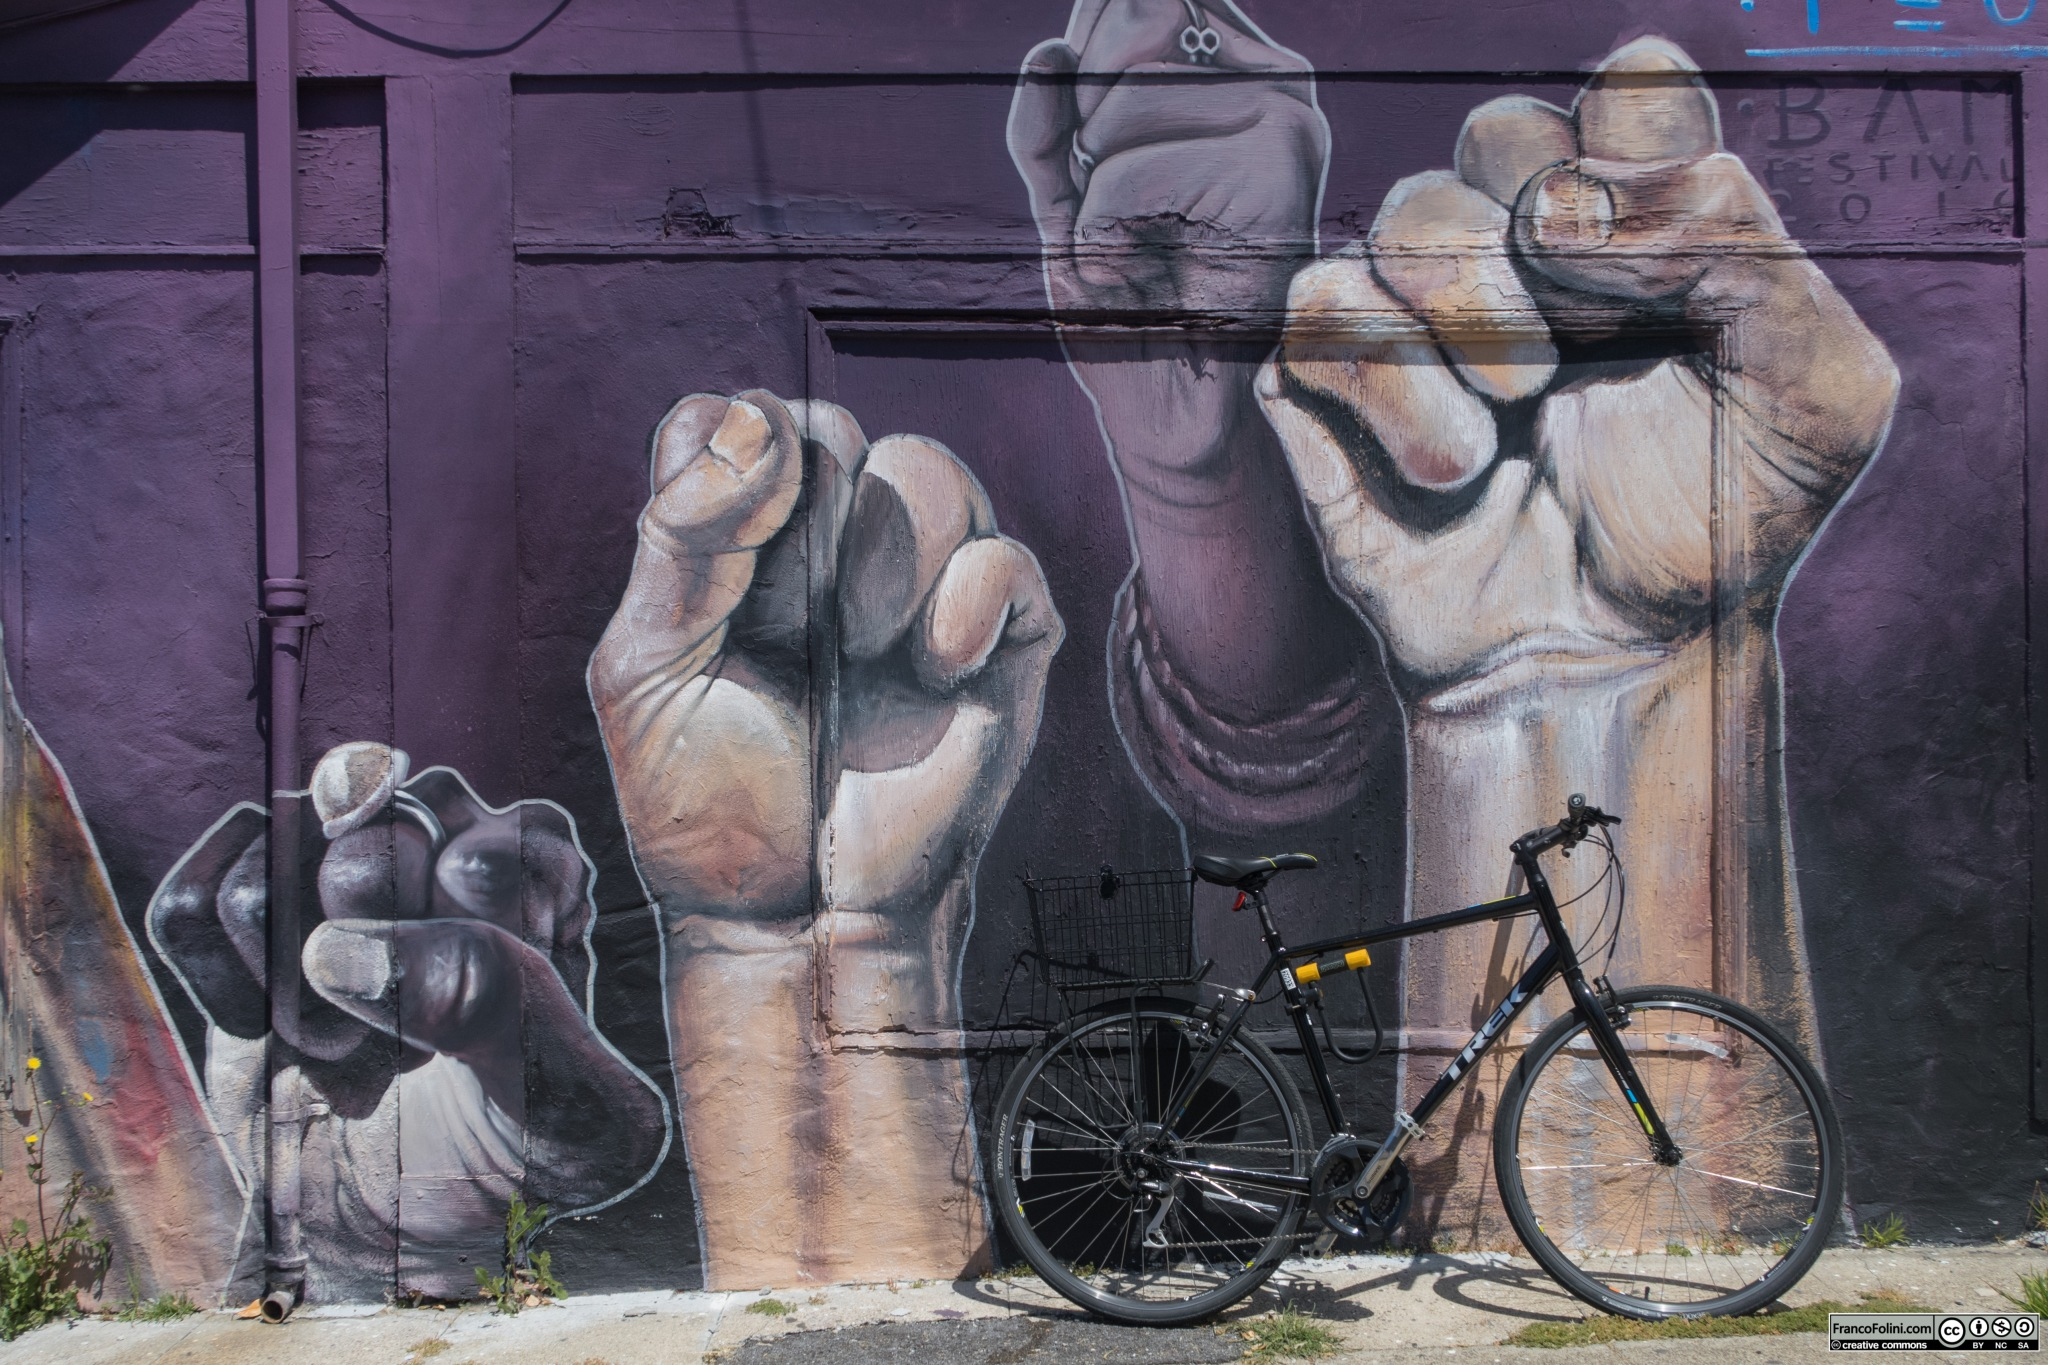 Bike and mural (mural by Chilean muralist Teo Doro) in Berkeley, CA